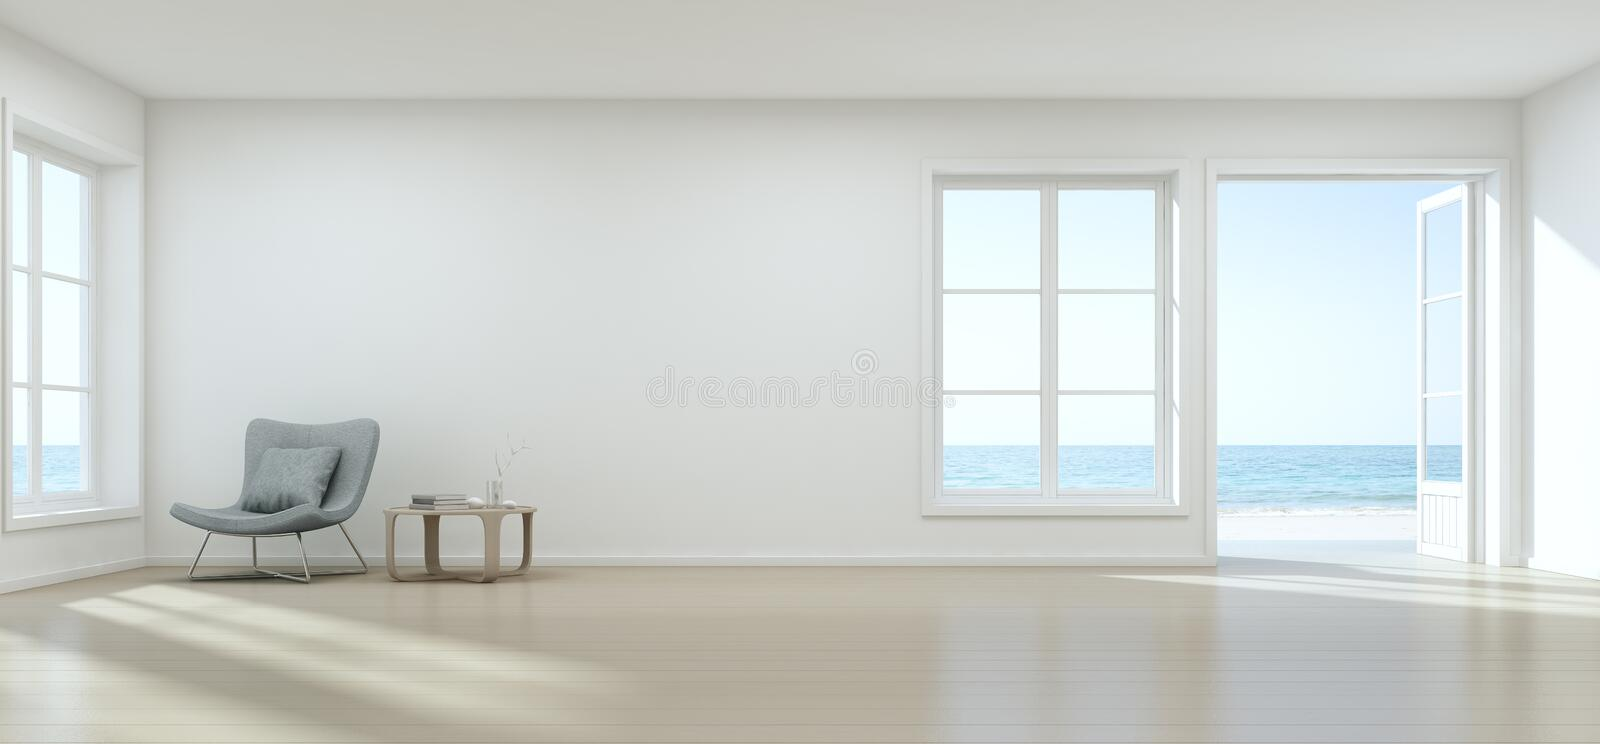 3D Rendering Of Interior With Chair And Coffee Table